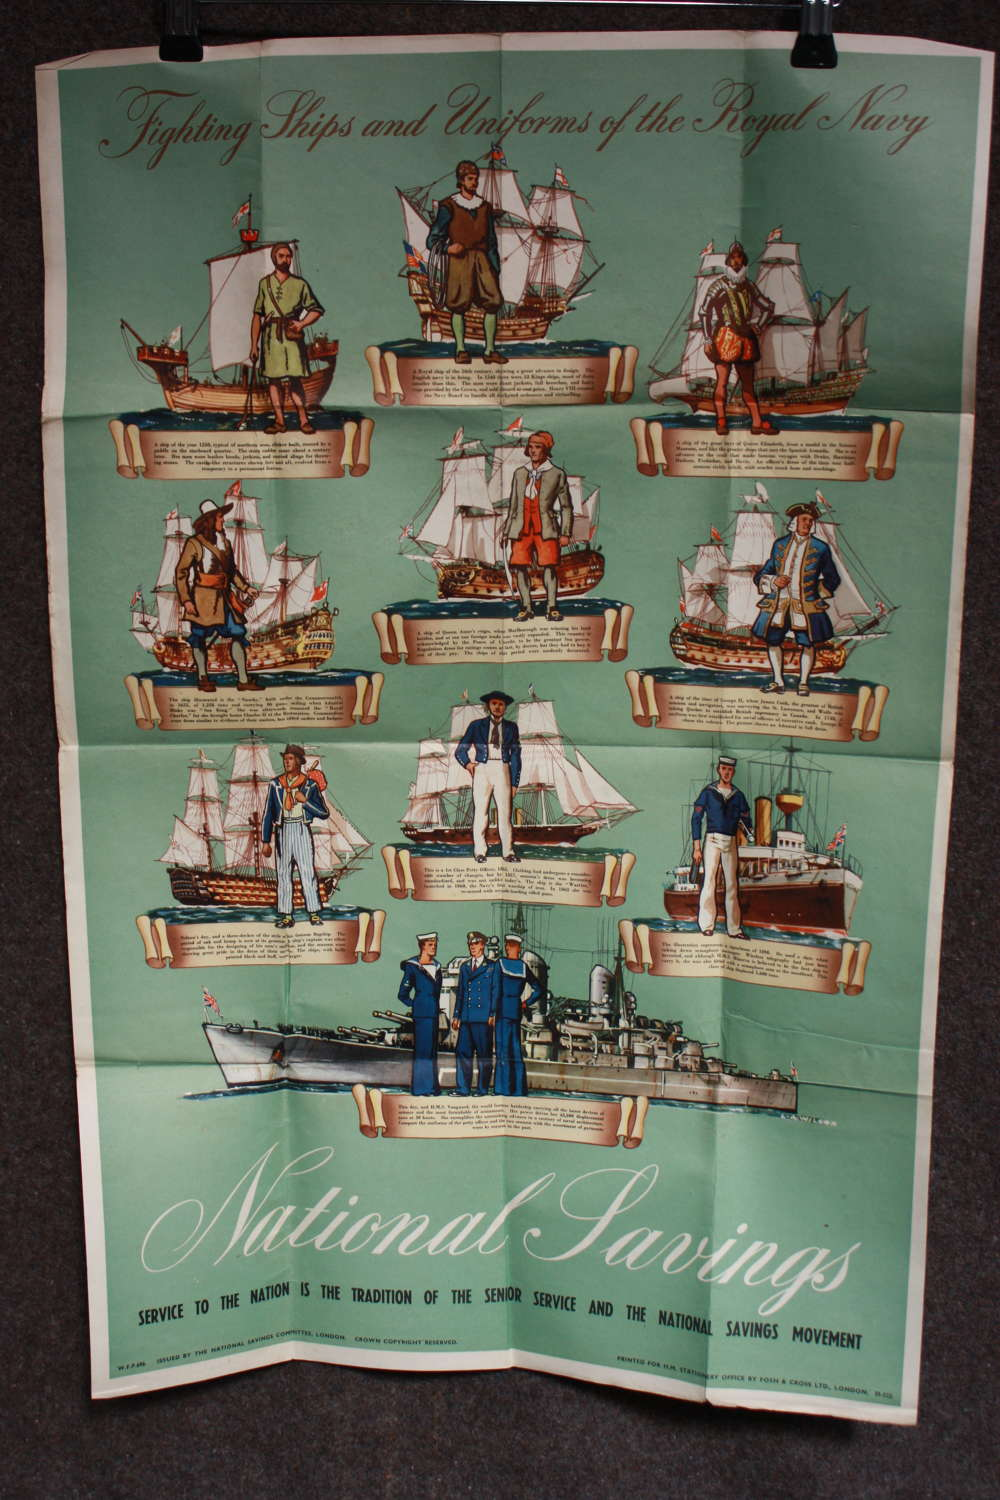 A NATIONAL SAVINGS POSTER SCARCE ROYAL NAVY EXAMPLE